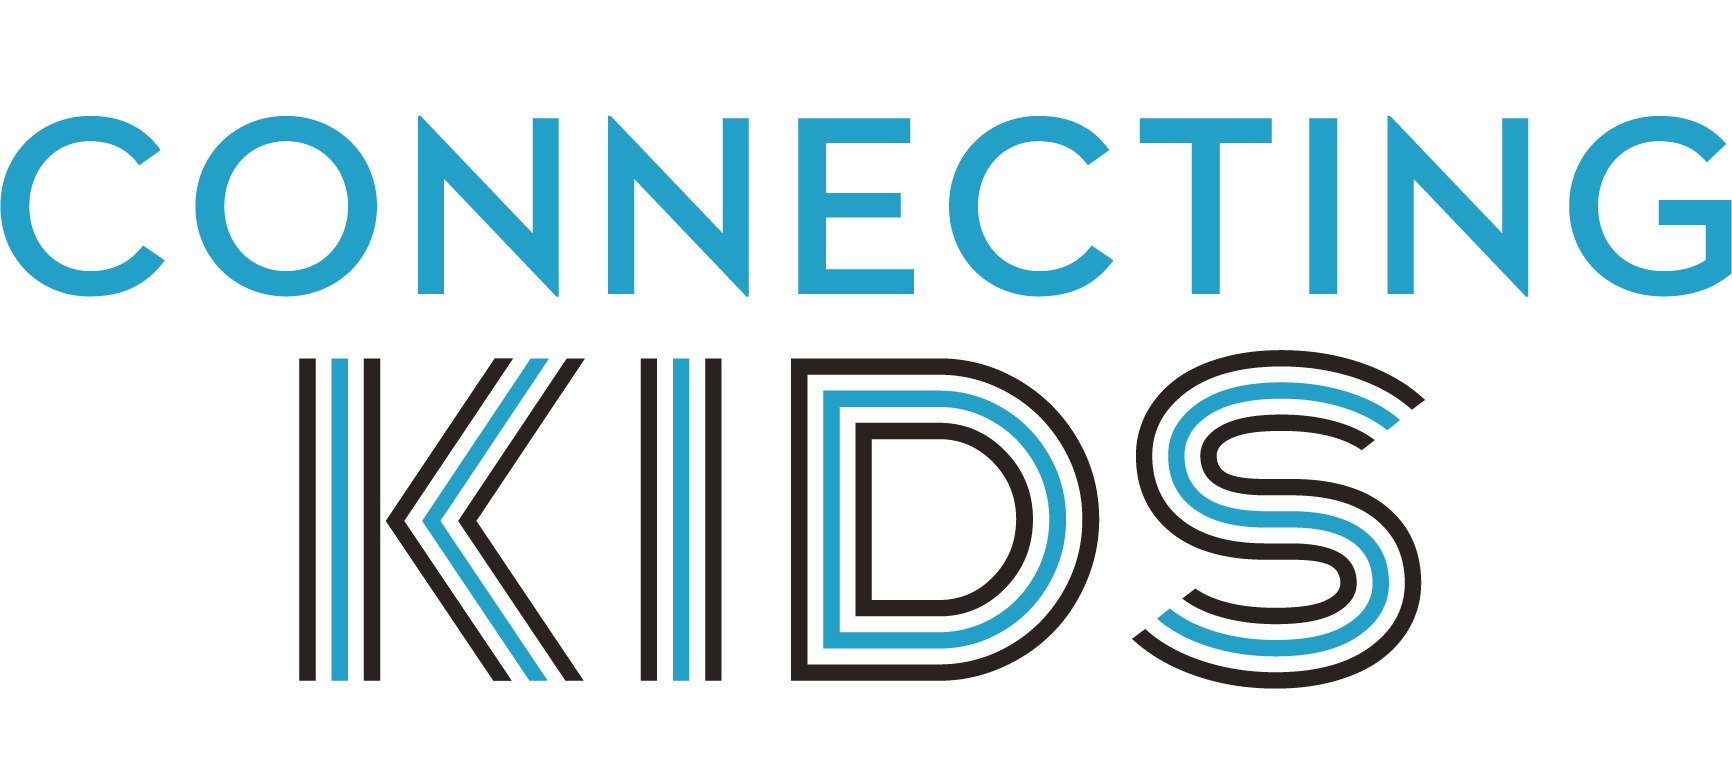 Chandler Center for the Arts Connecting Kids Logo